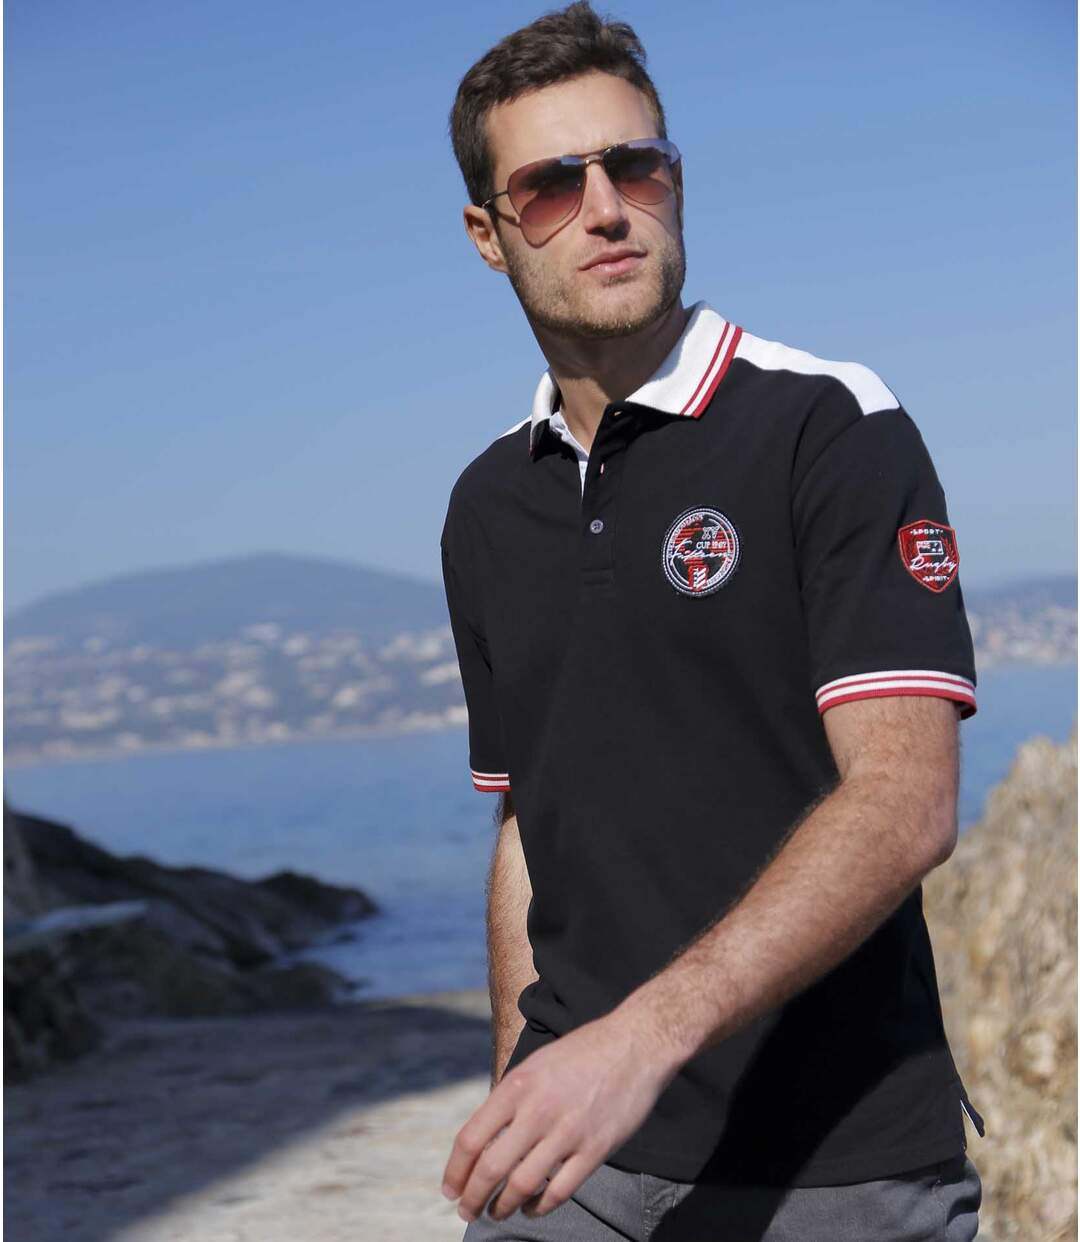 Poloshirt Pacific Team im Rugby-Design